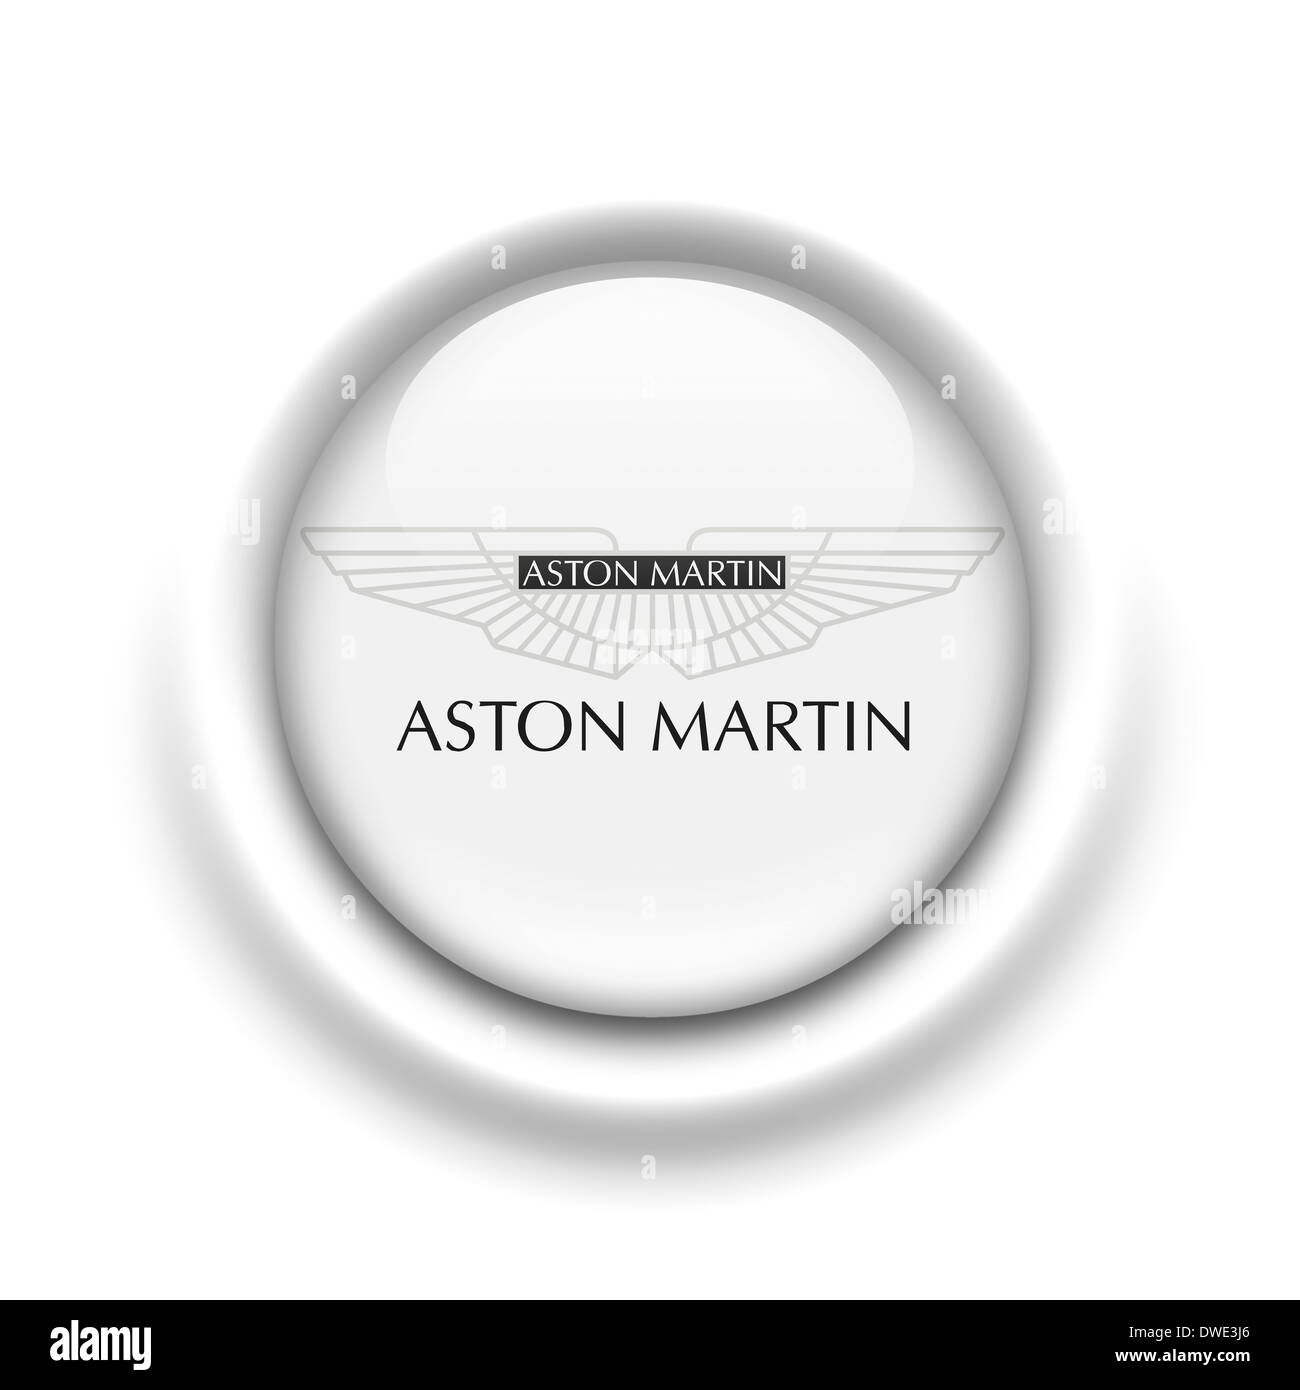 Aston Martin Cut Out Stock Images & Pictures